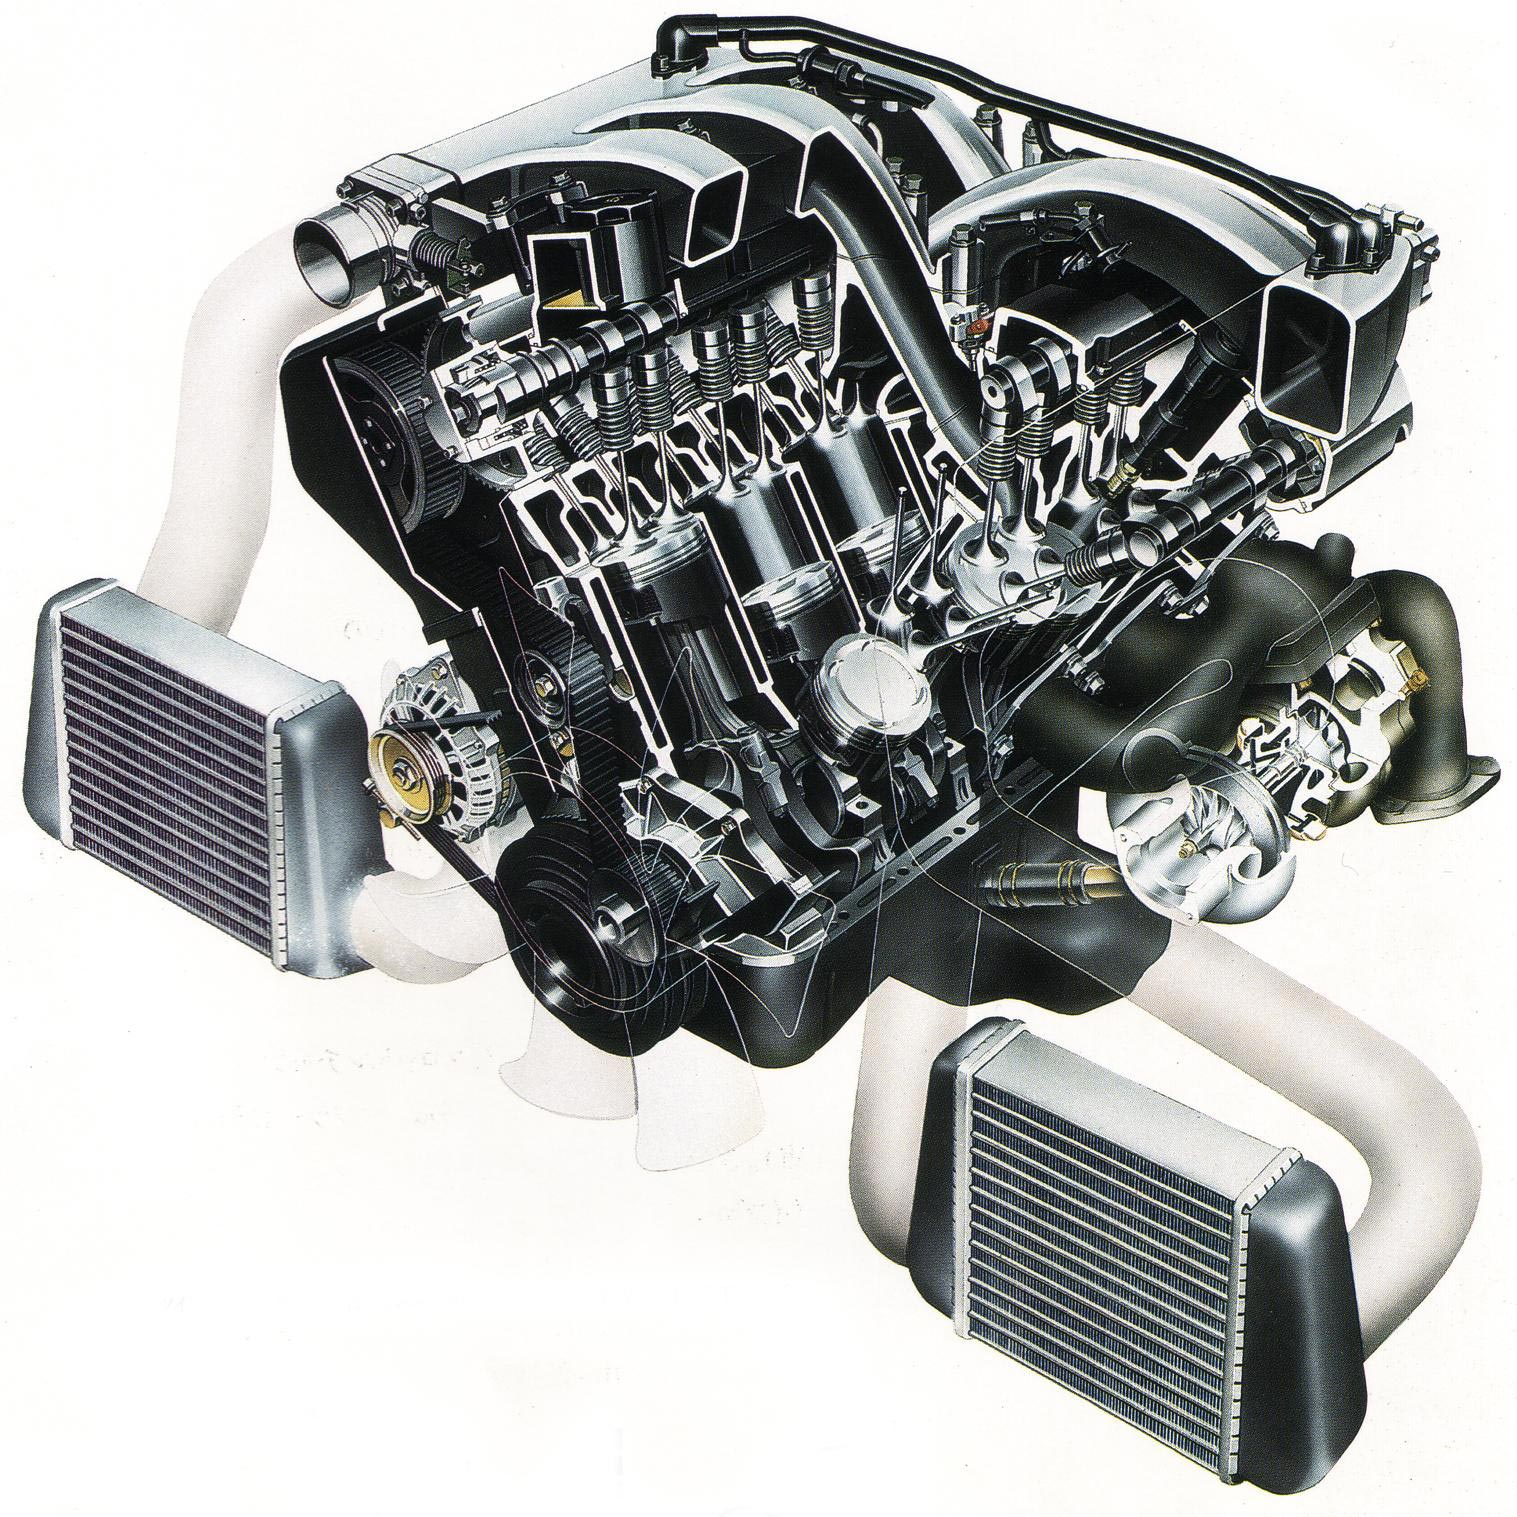 nissan 300zx twin turbo engine cutaway drawing in high quality. Black Bedroom Furniture Sets. Home Design Ideas